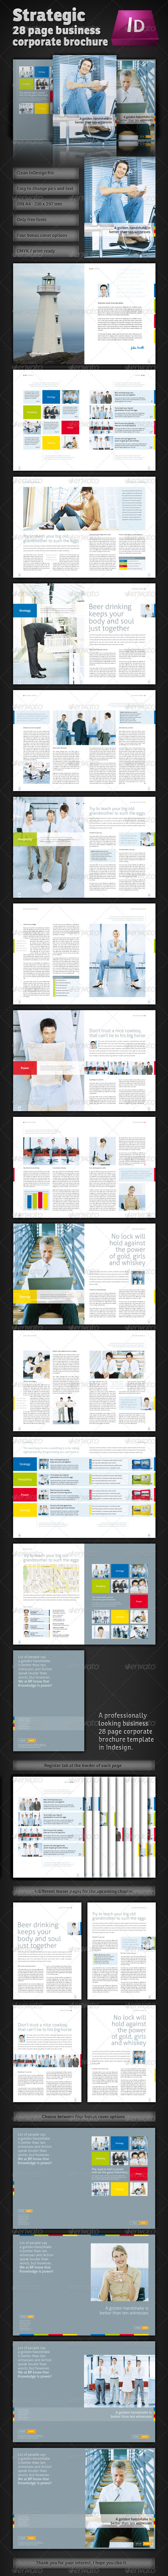 Strategic 28 Page Corporate Brochure - Corporate Brochures